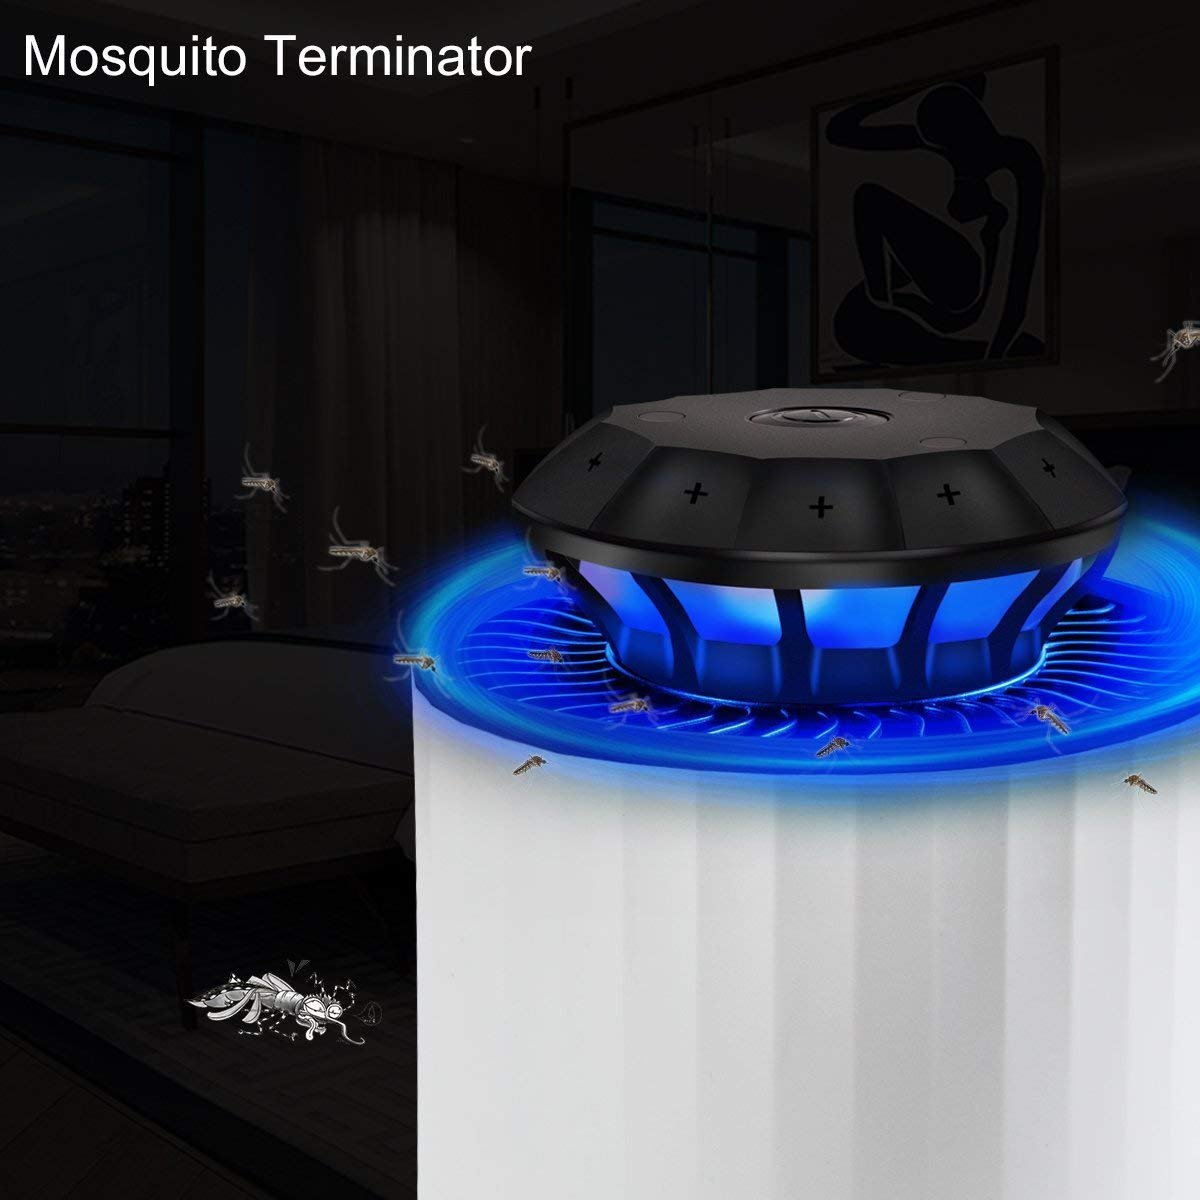 Mery Electric Insect Trap Indoor Bug Fly Mosquito Trap Killer – UV Light, Fan Suction Traps Even the Tiniest Flying Insects – No Zapper – Child-Safe, Non-Toxic Odor-Free (White) by Mery (Image #7)